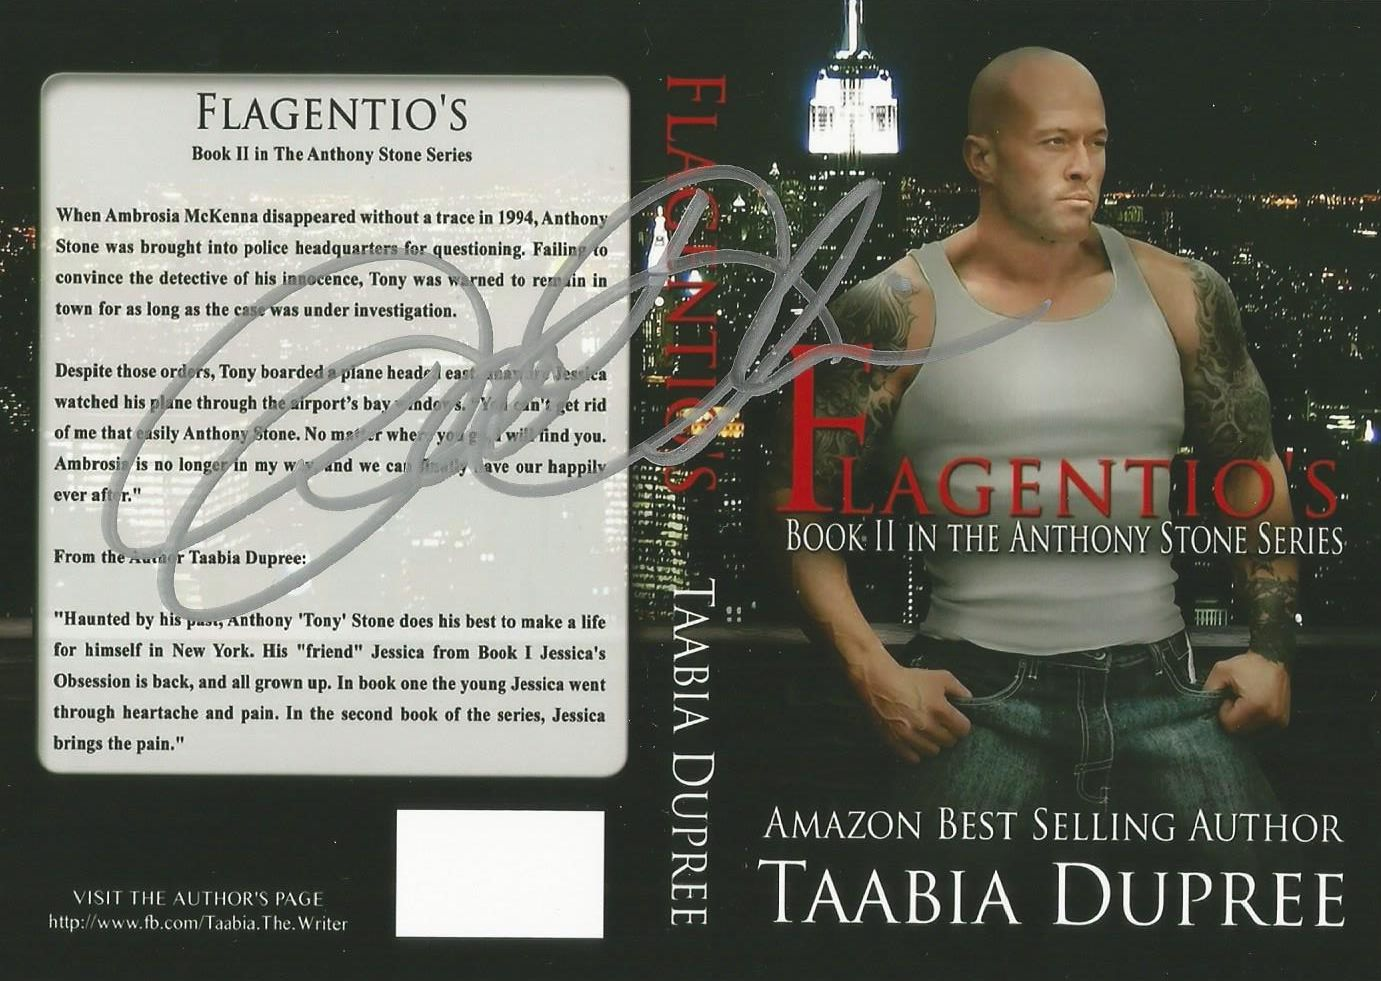 ☆Signed Memorabilia - 'The Most Tattooed Male Romance Cover Model in The World 2014' John Joseph Quinlan Autographed Flagentio's Paperback Book Promo by Author Taabia Dupree #JohnQuinlan